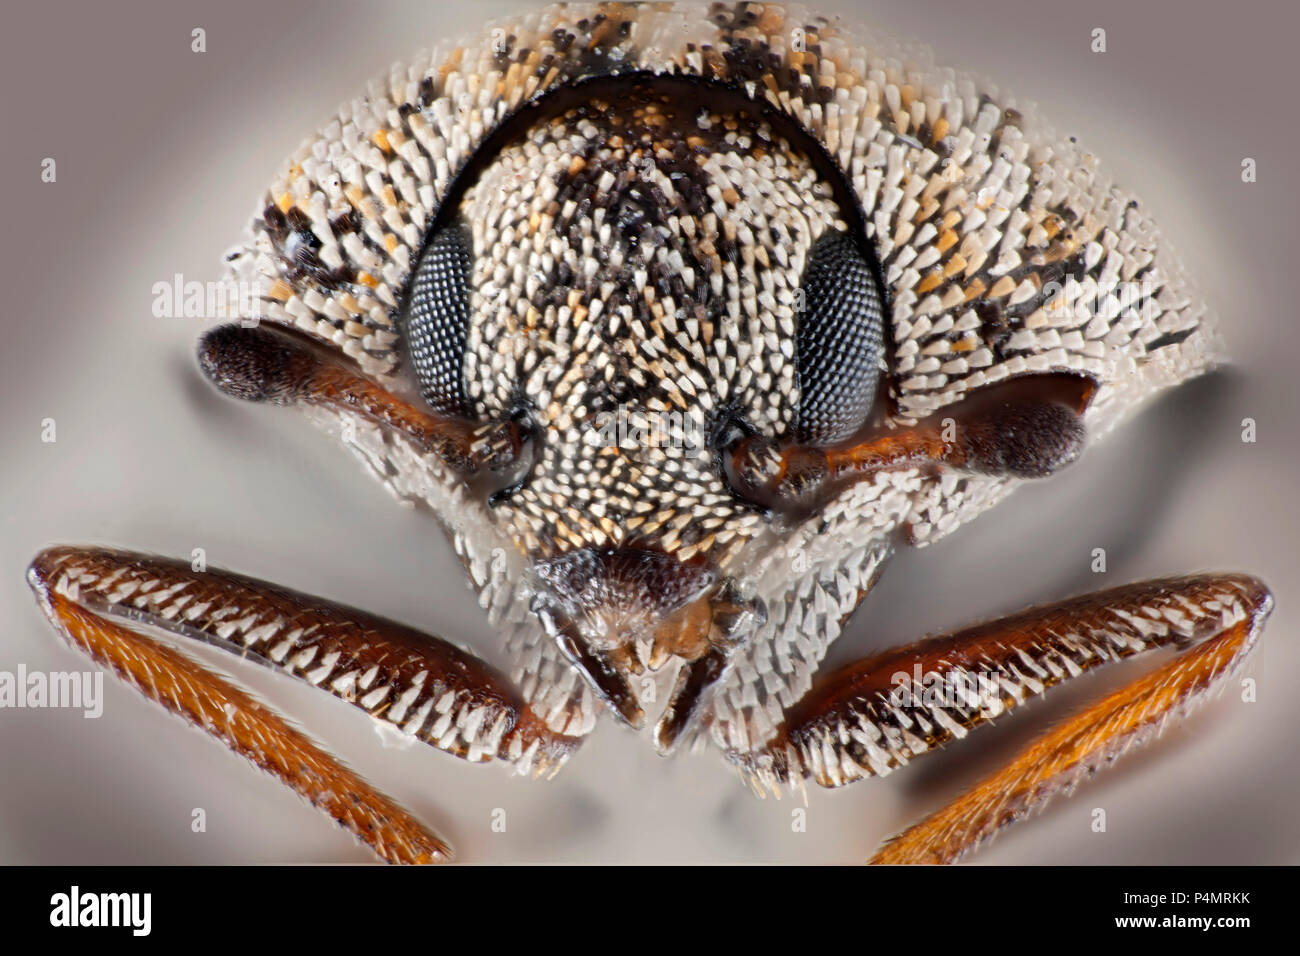 Varied carpet beetle (Anthrenus verbasci) macro portrait - Stock Image